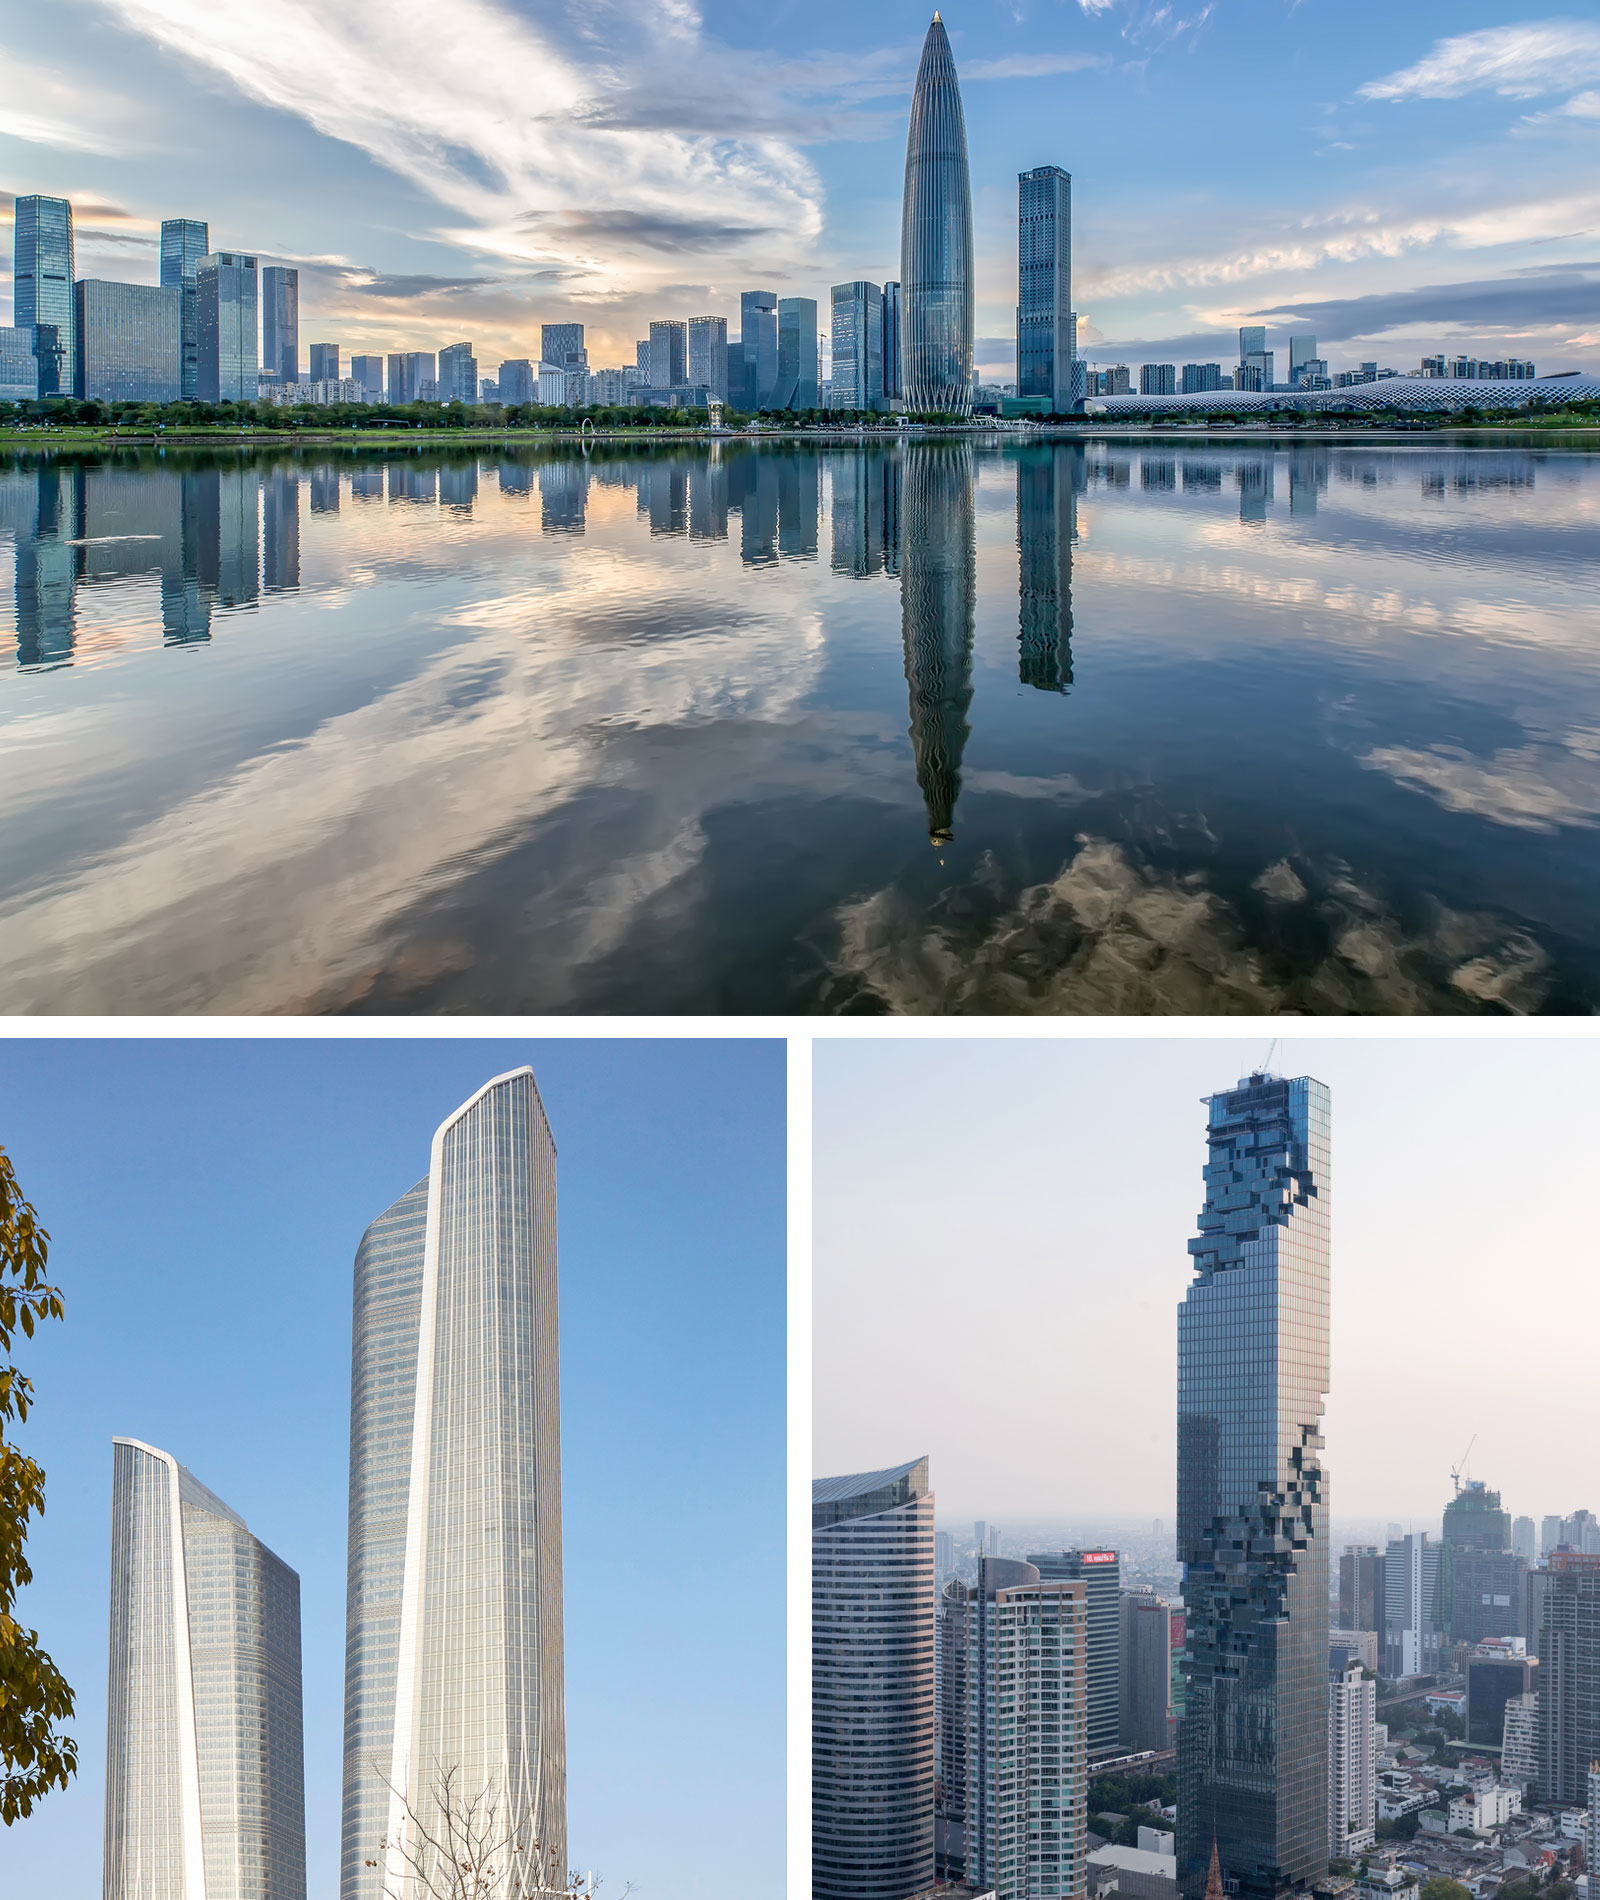 China Resources Headquarters - Shenzen (top middle), Jumeirah Nanjing Hotel - Nanjing (bottom left), MahaNakhon - Bangkok (bottom right).